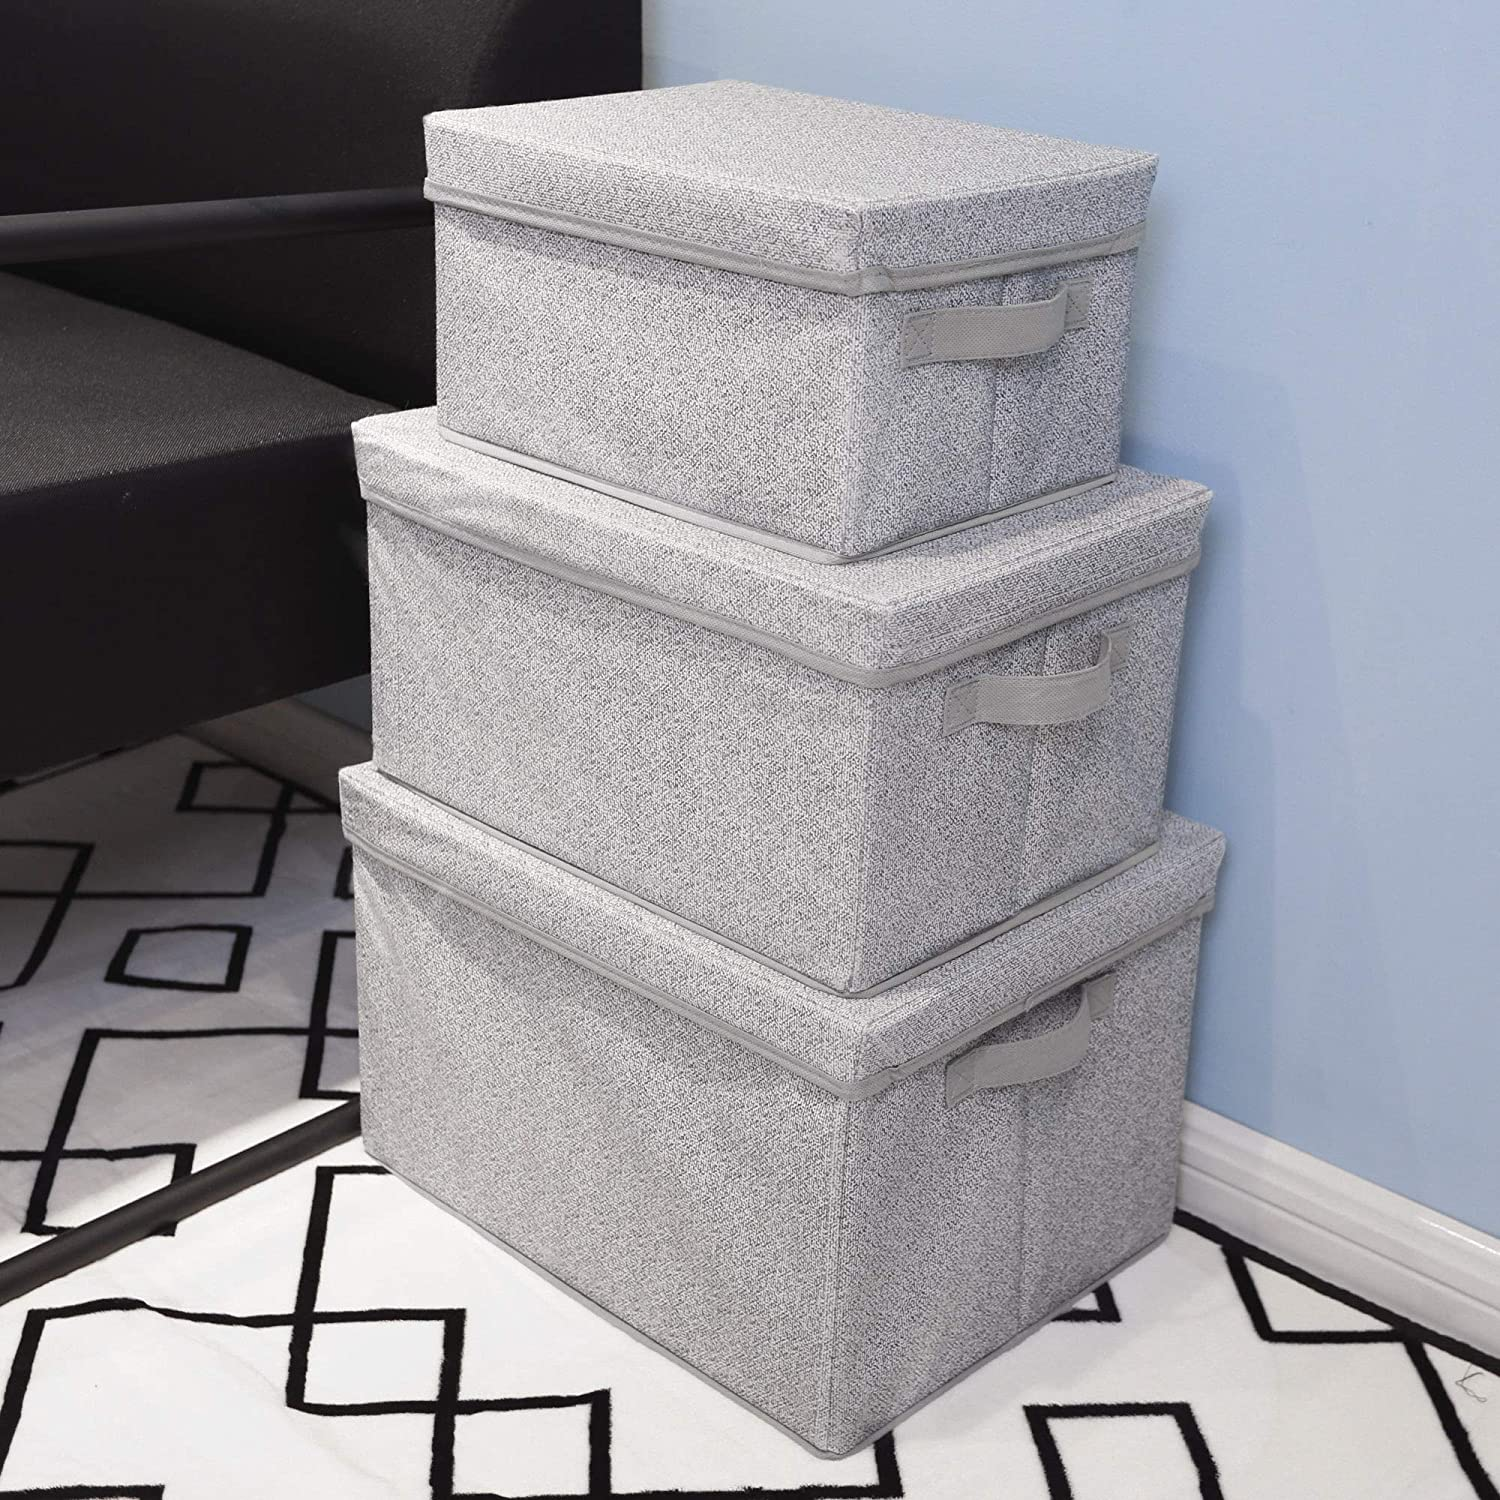 Rectangle Storage Box Fabric Storage Baskets Containers Large 3-Pack GRANNY SAYS Storage Bins for Closet with Lids and Handles Gray